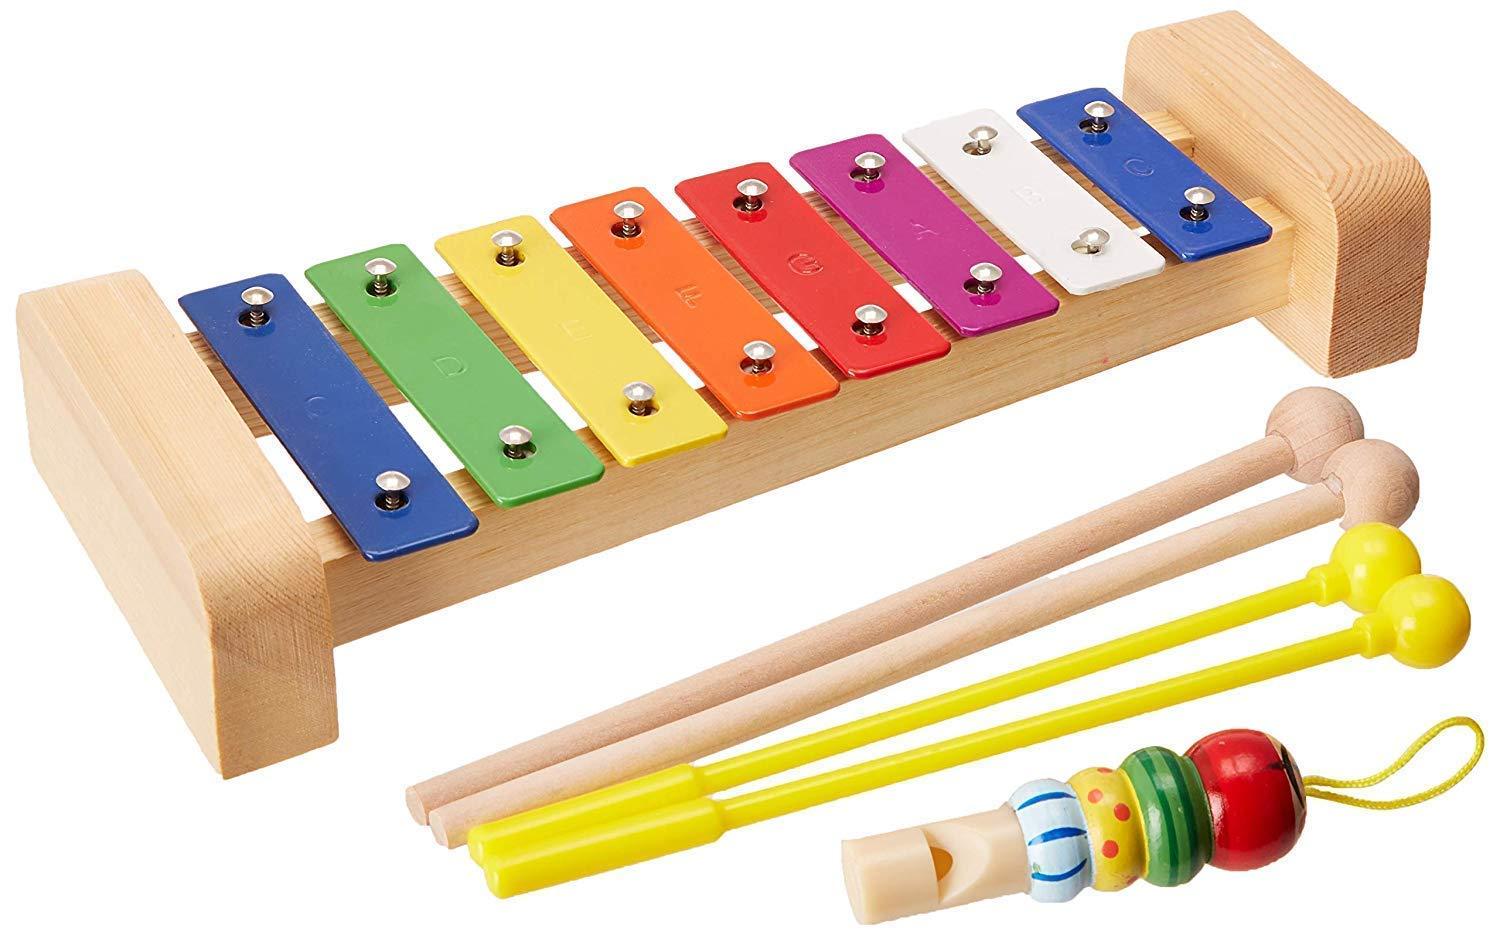 Xylophone for Kids: Glockenspiel Toy Best Birthday/Holiday Gift Idea - With(Four) Child-Safe Mallets 2 Wood 2 Plastic, 3 Music Card & Whistle Included by aGreat Shark (Image #2)